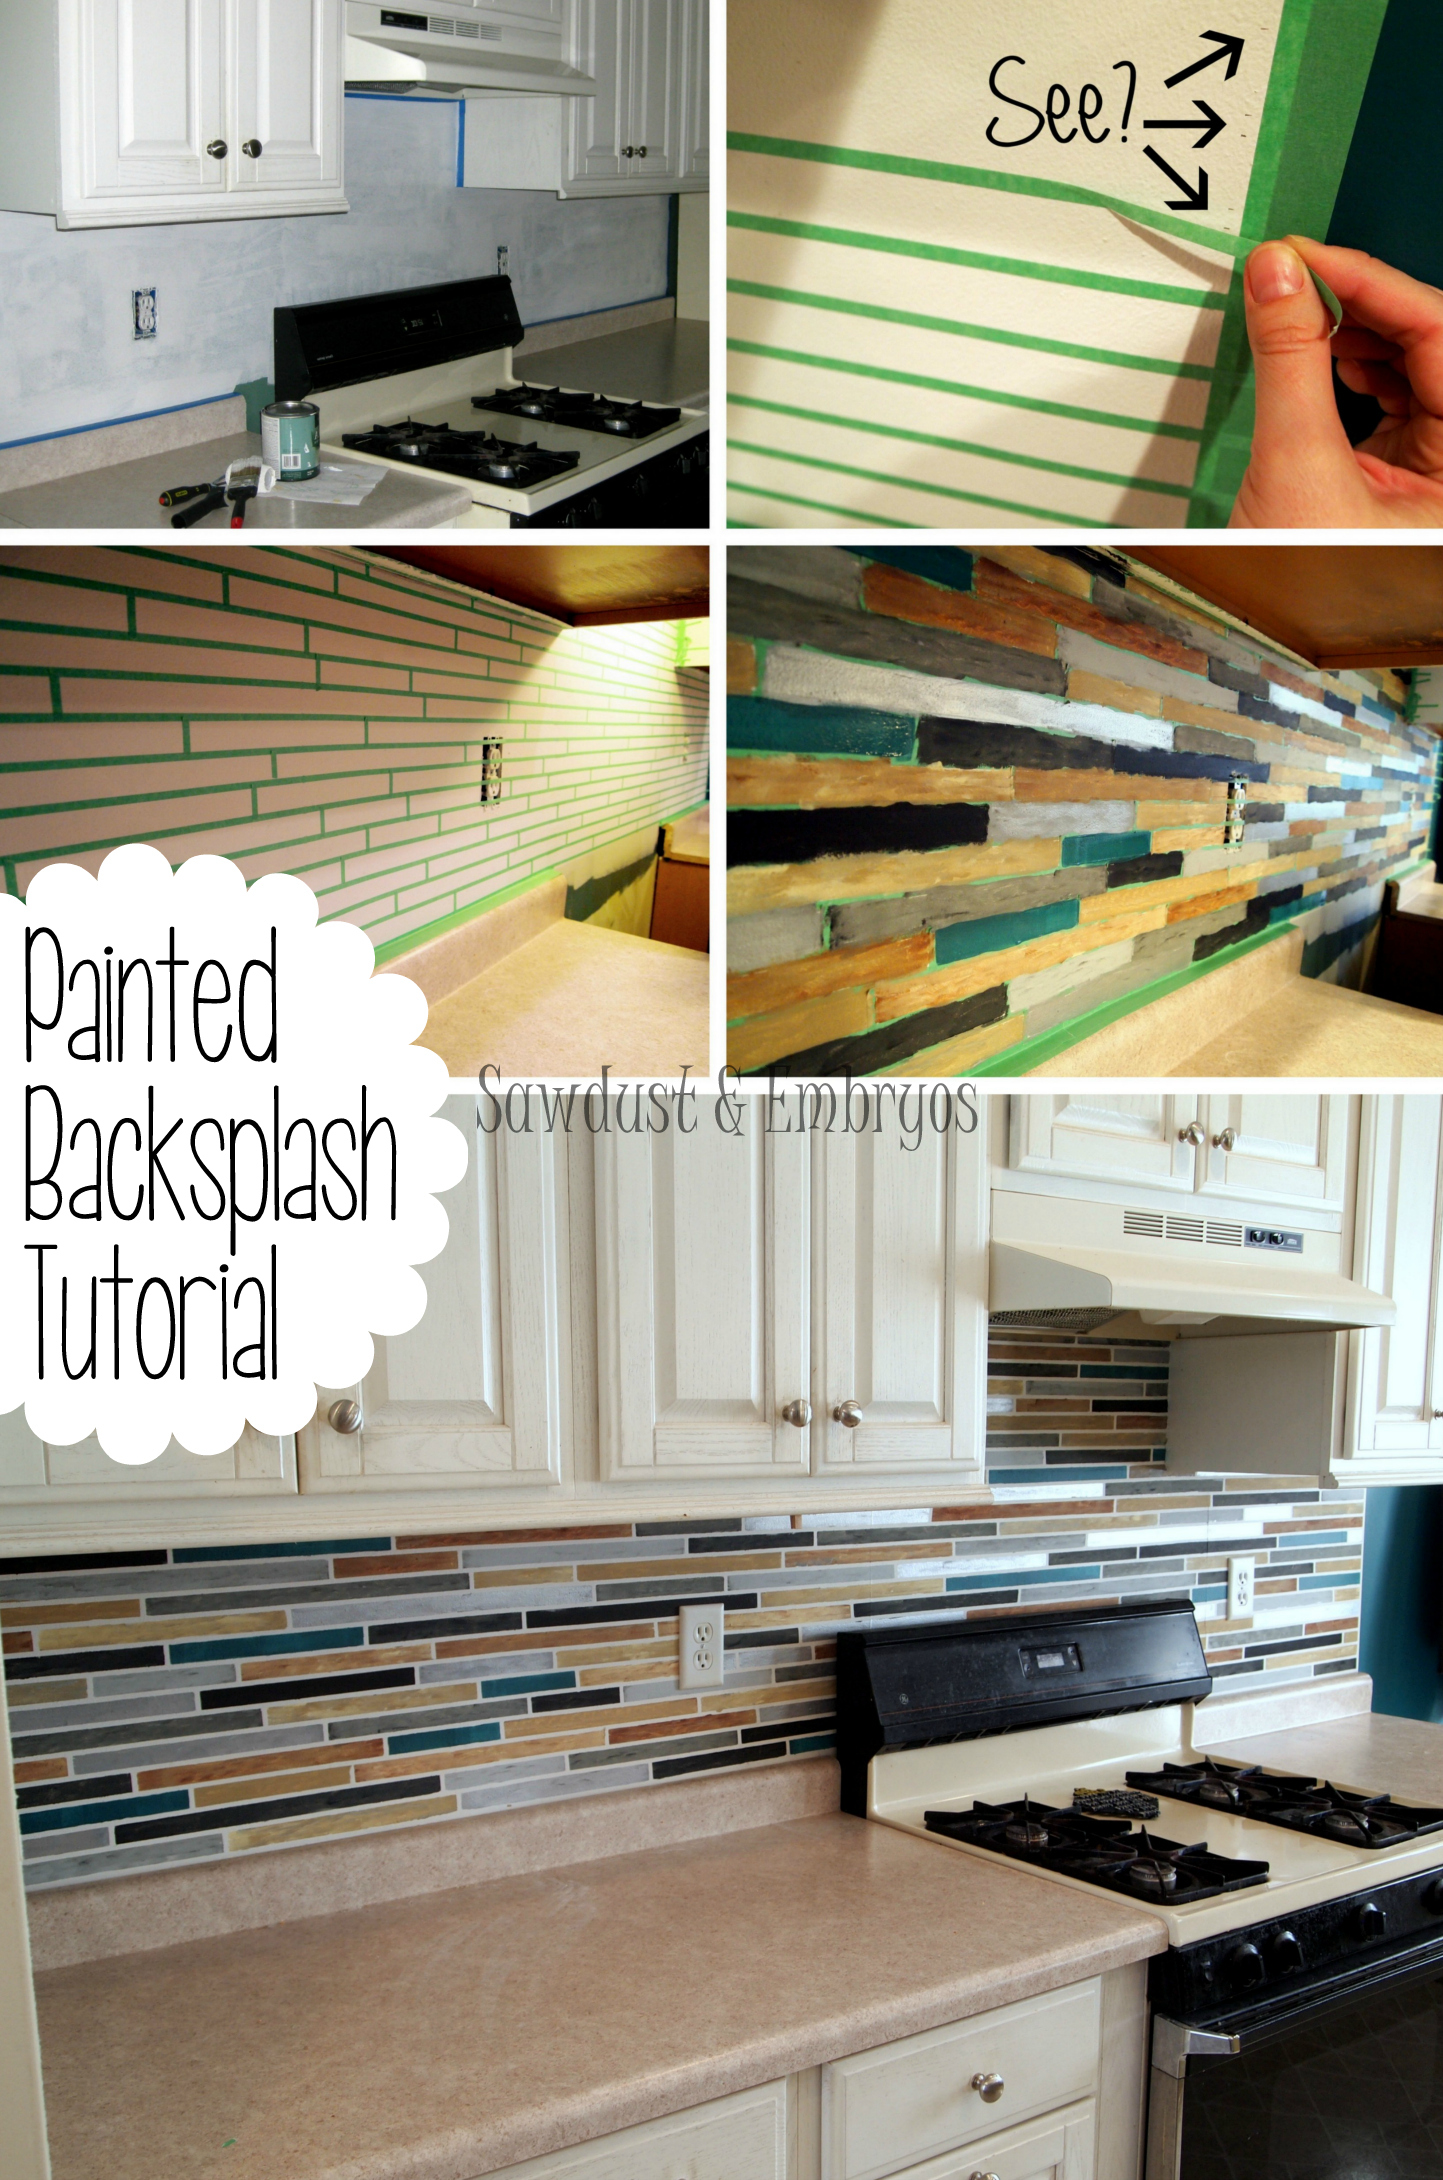 How to paint a backsplash to look like tile paint your backsplash to look like custom tile sawdust embryos dailygadgetfo Images